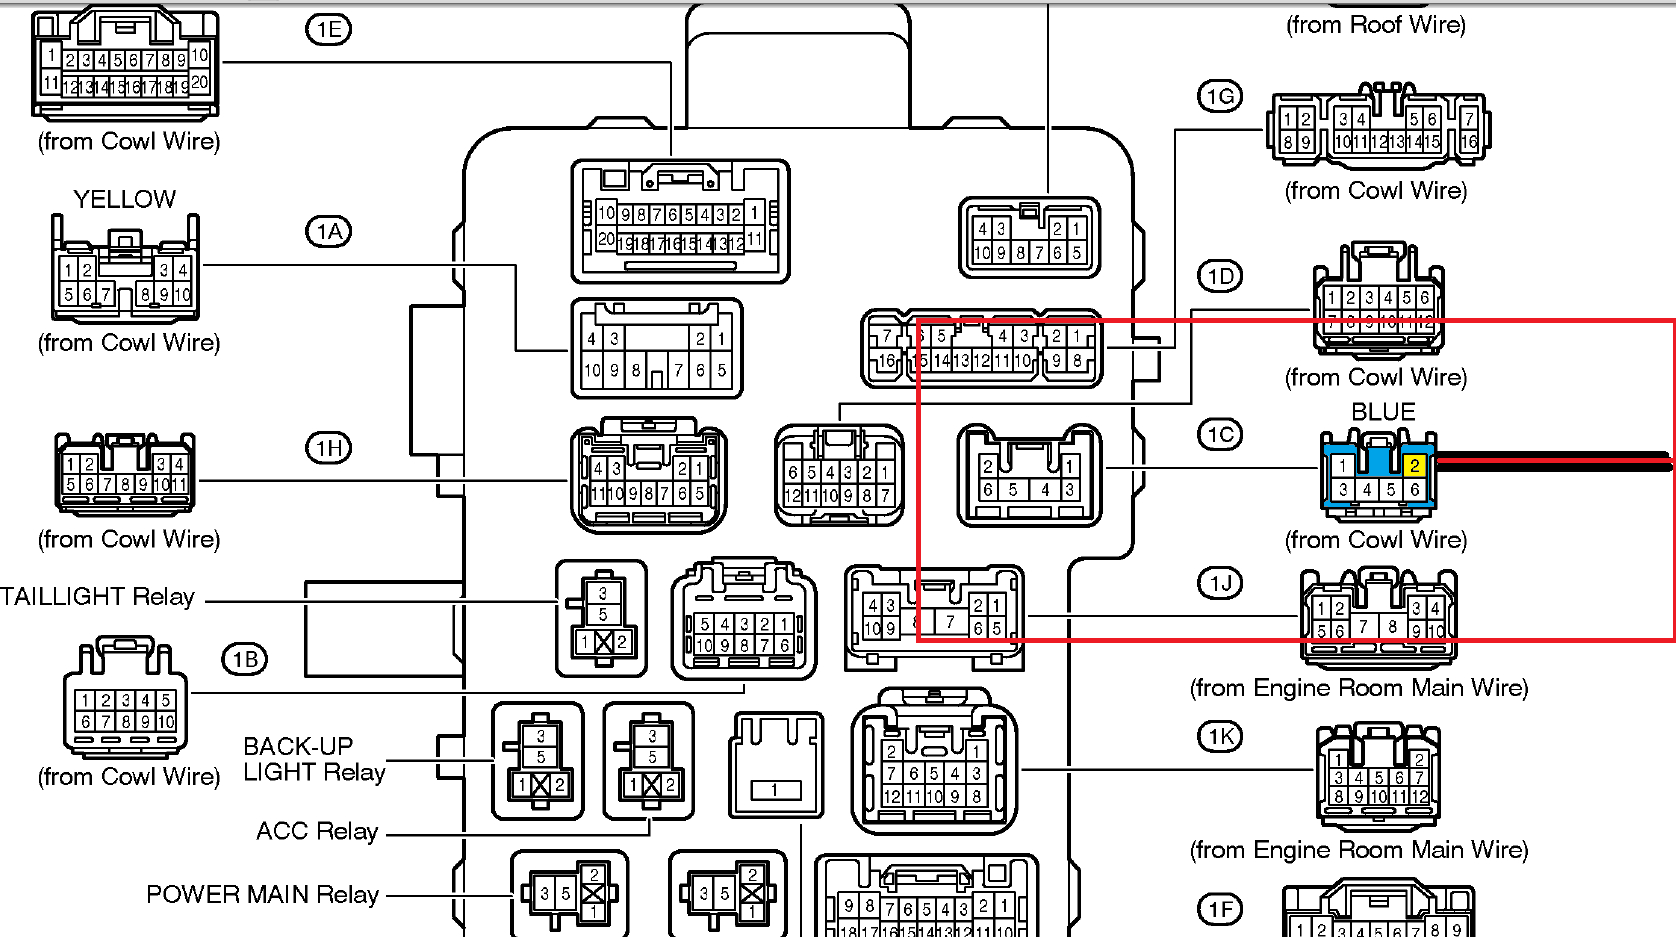 07 Tundra Trailer Wiring Diagram | Wiring Diagram - 07 Tundra Trailer Wiring Diagram